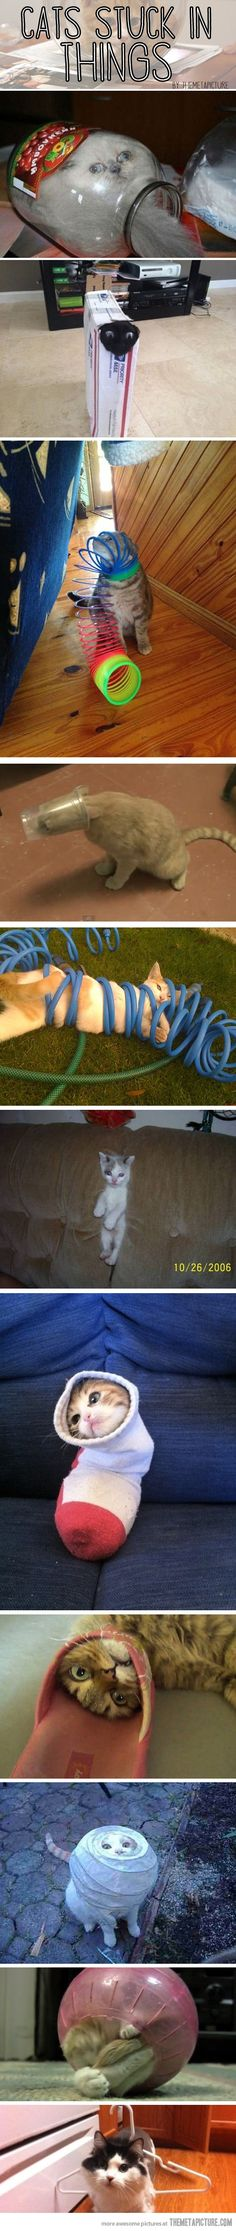 Cats stuck in things- awful, but hilarious at the same time!